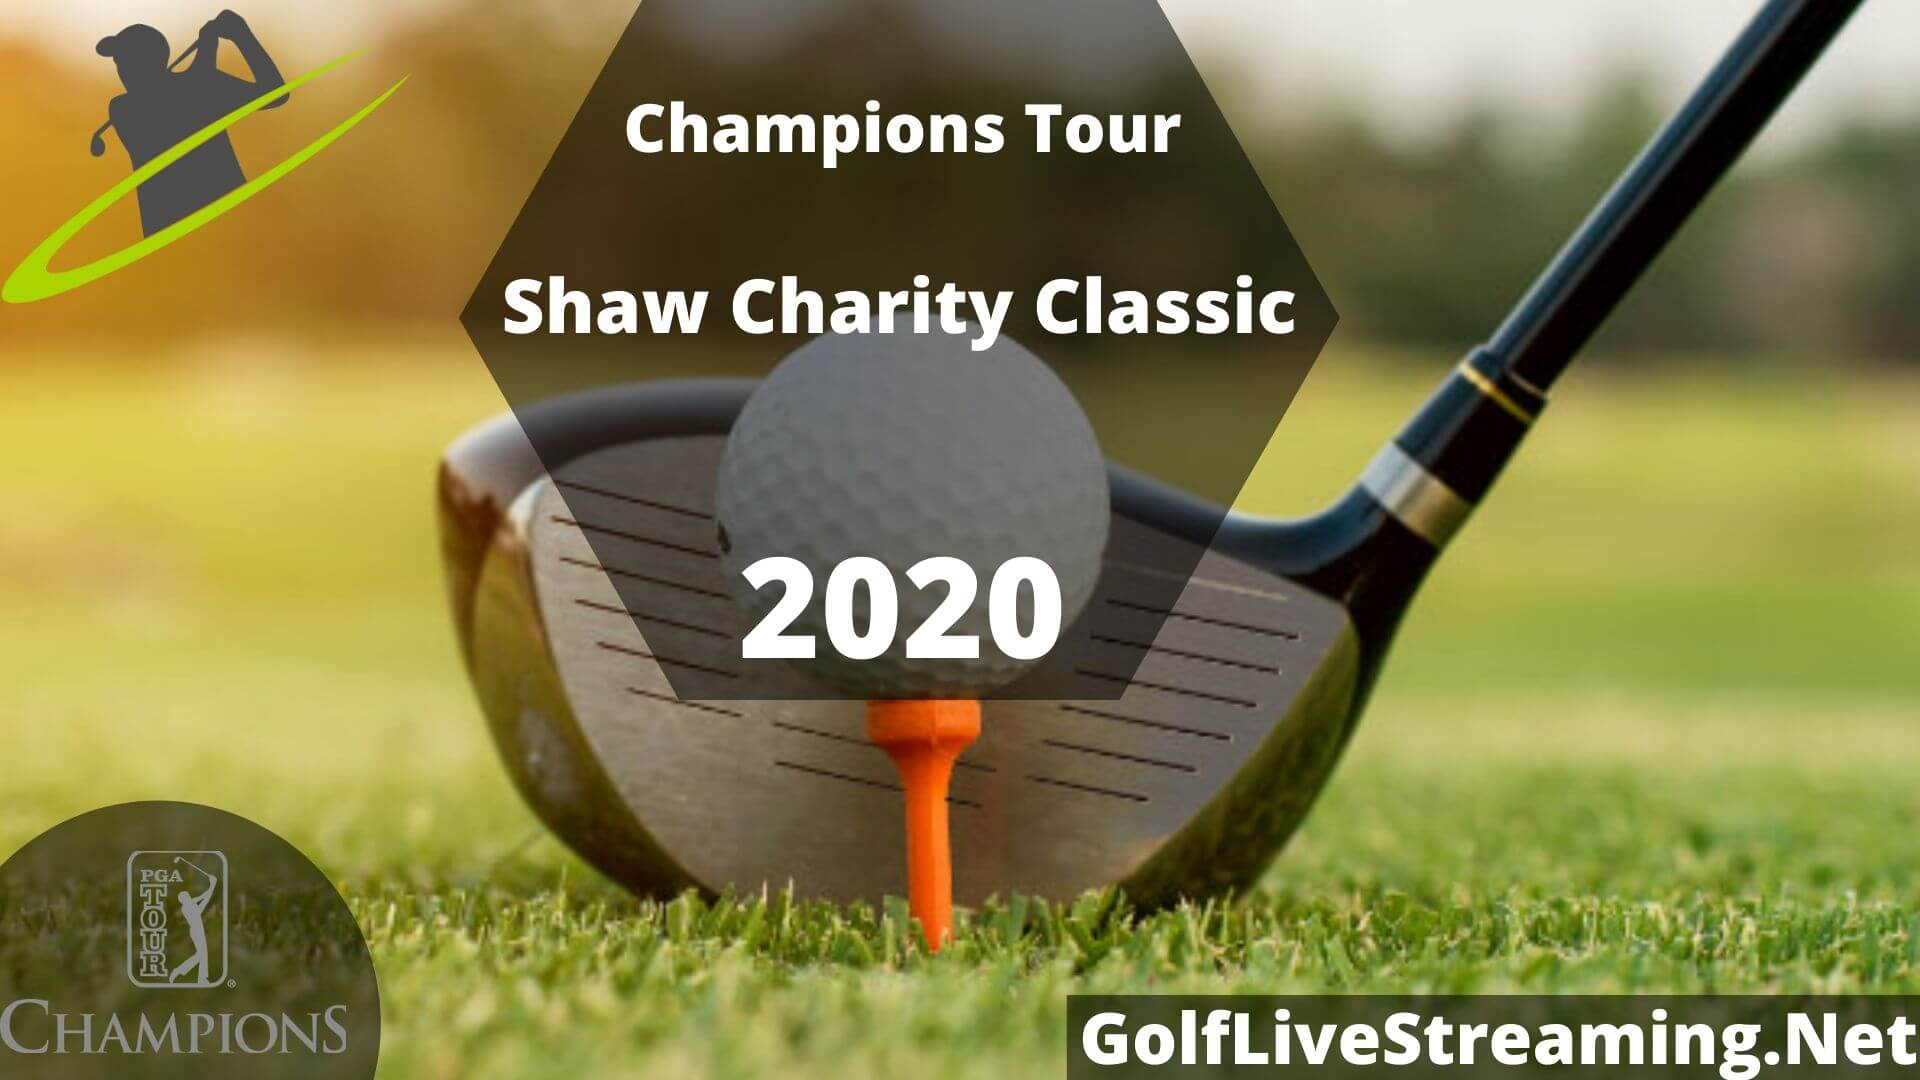 Shaw Charity Classic Live Stream 2020 | Champions Tour Round 3